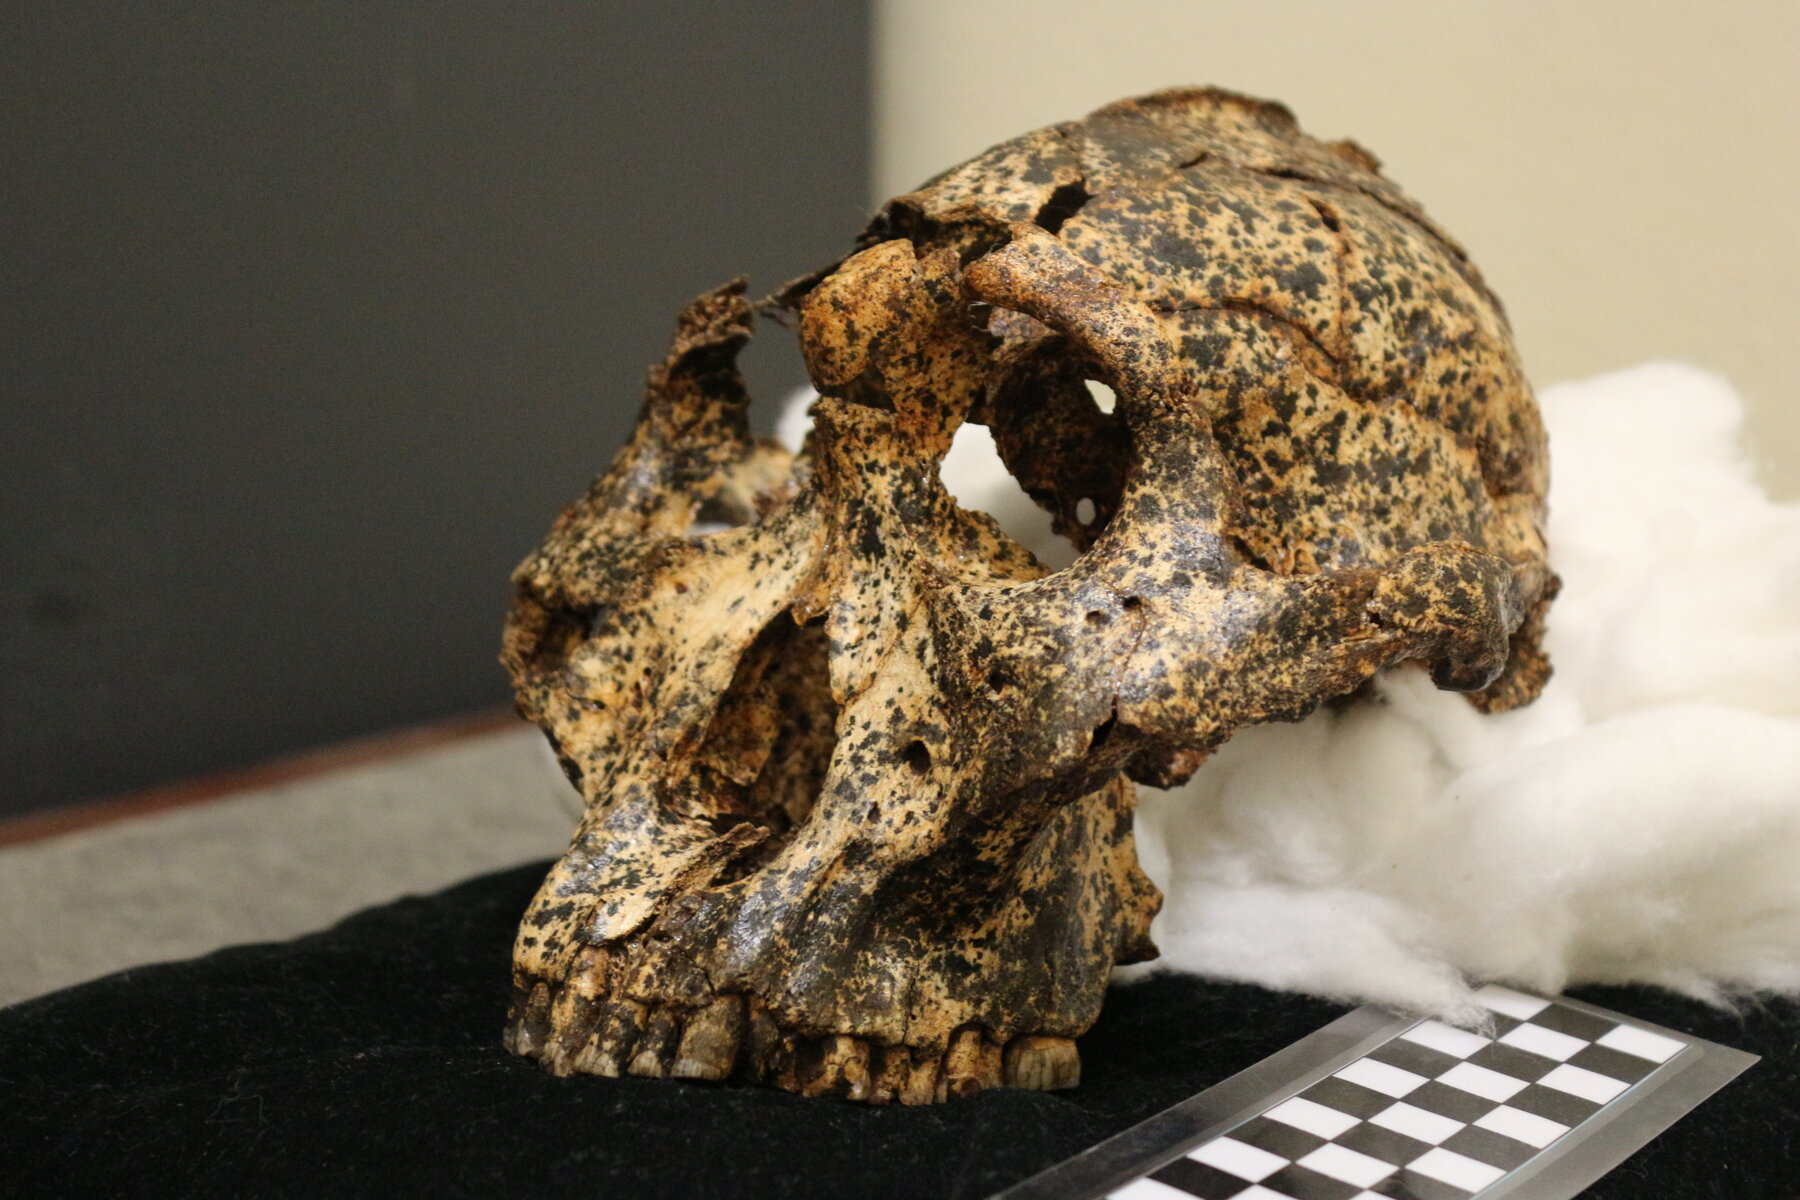 Fossil child skull from 2.2 million years ago reveals how humans out-smarted the other great apes - and the key is the soft heads of our babies